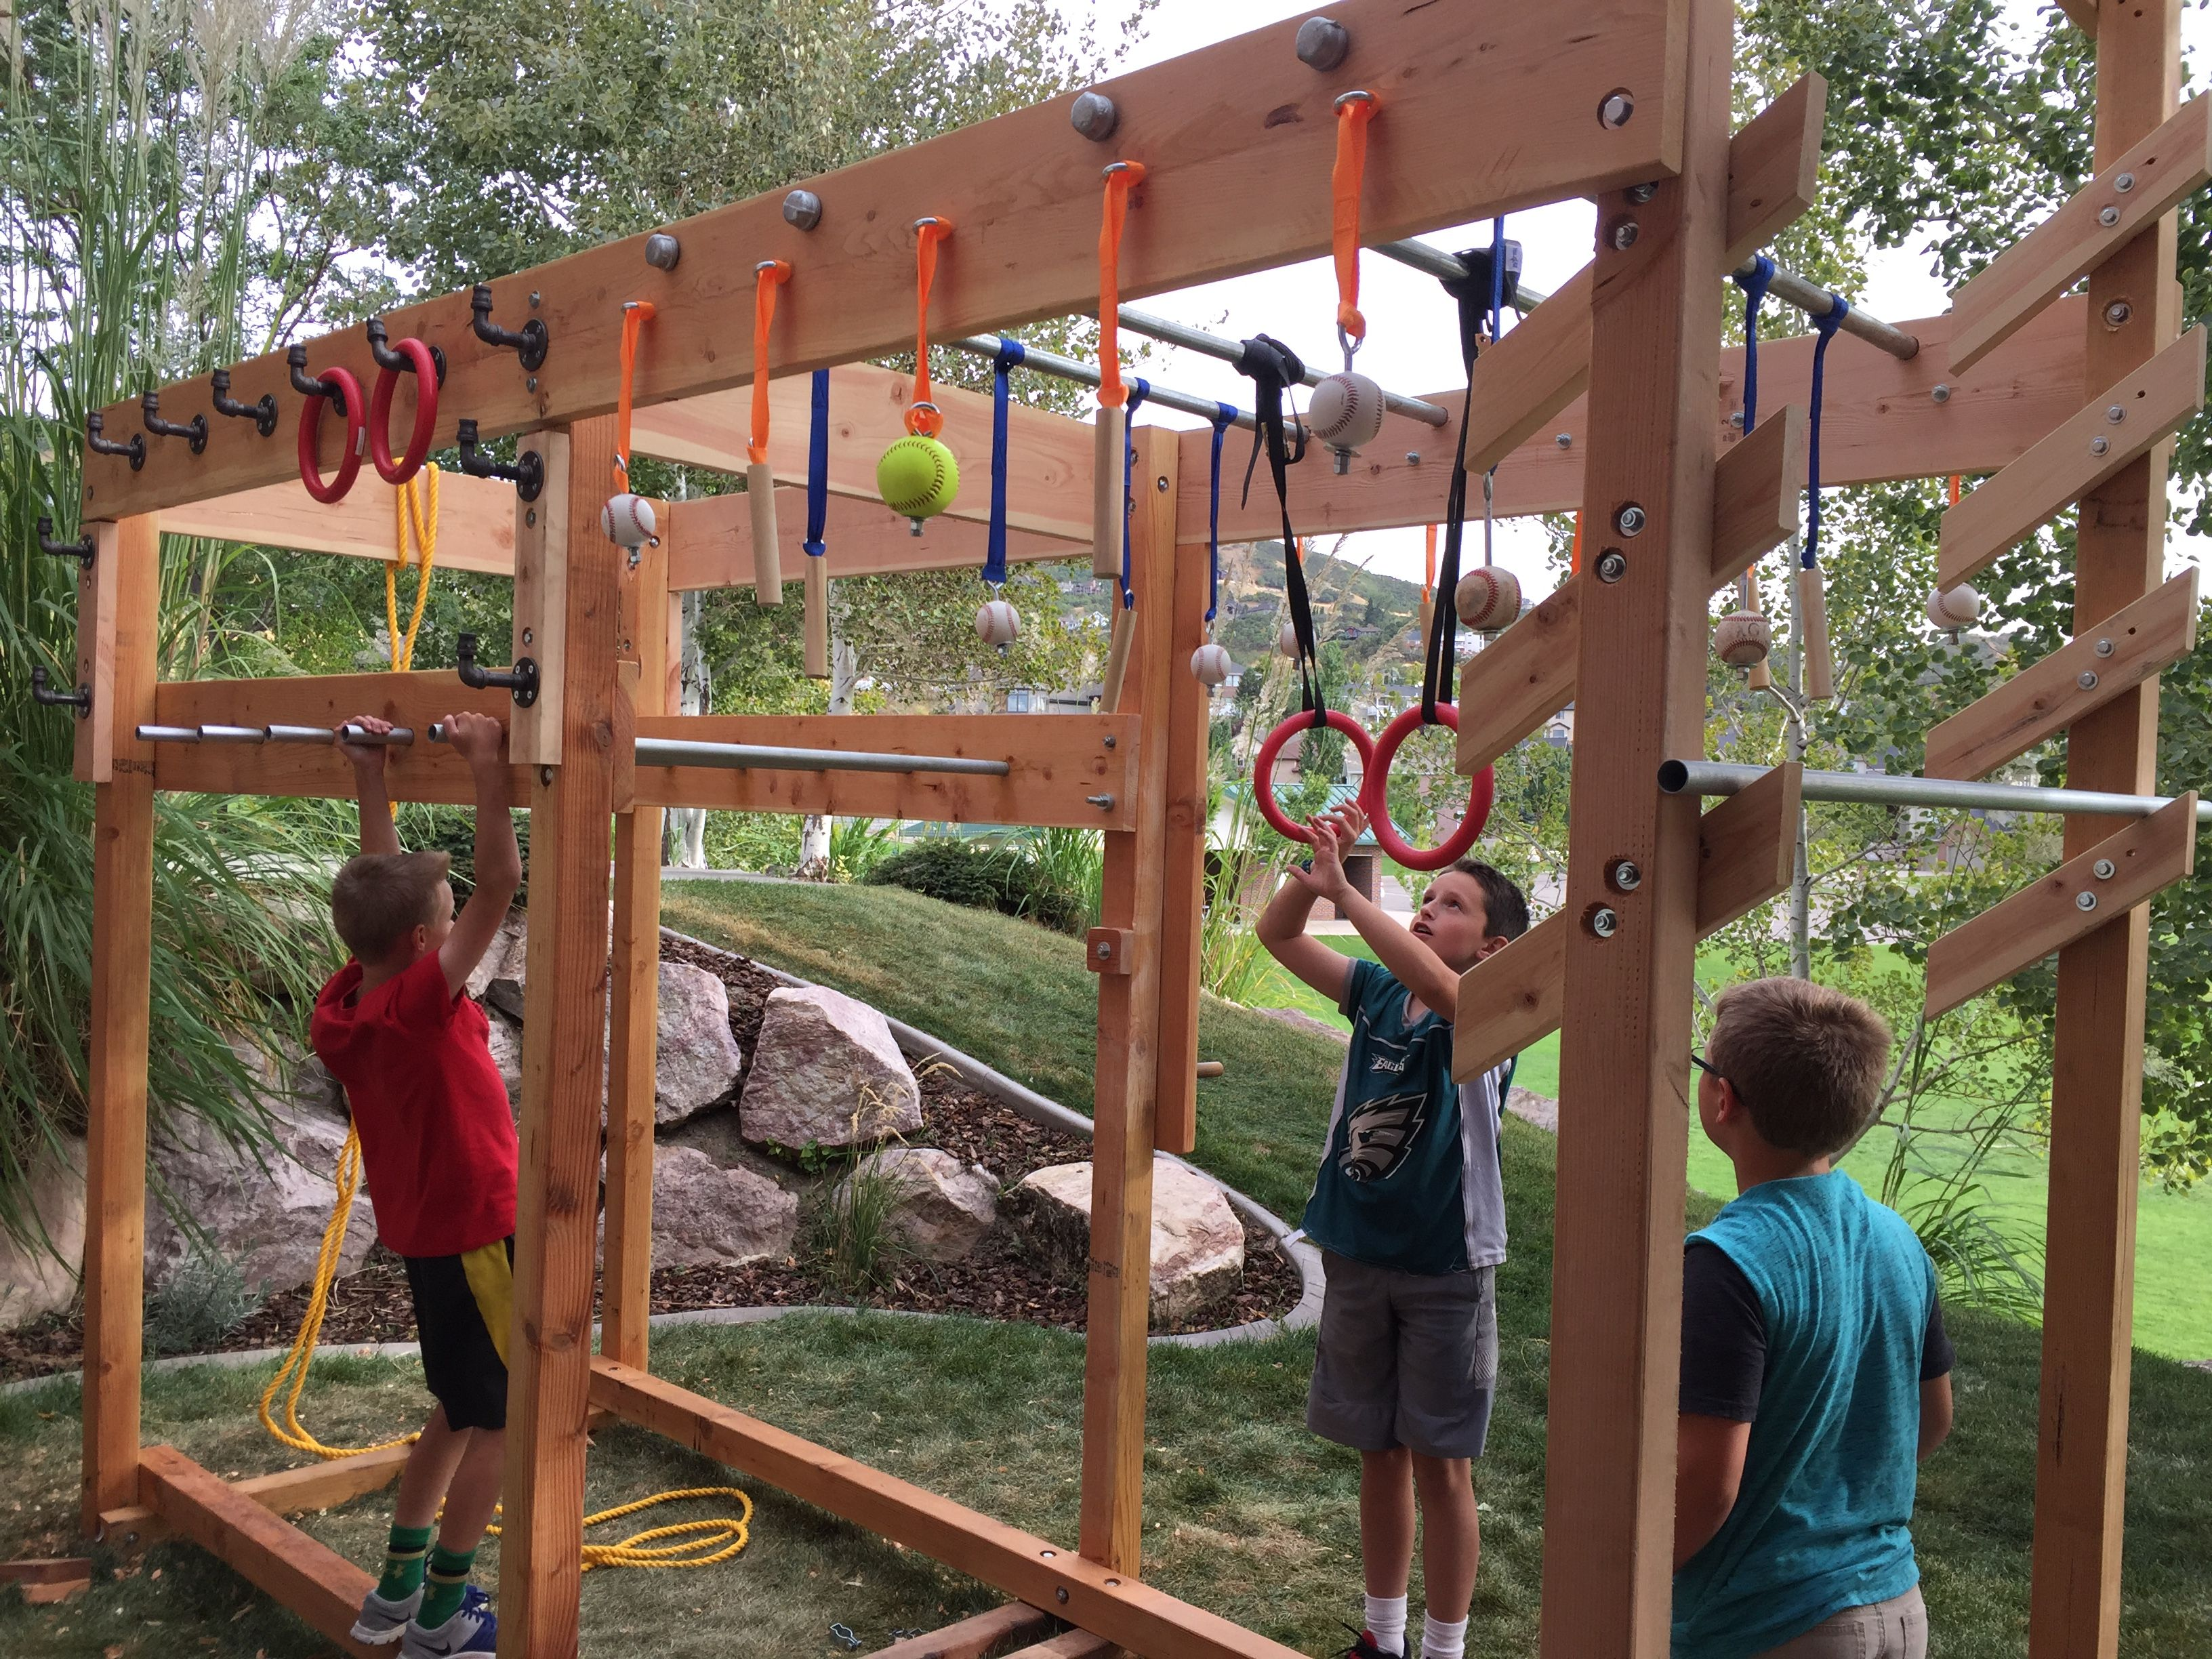 Ninja Warrior Training Course I Made For The Kids And Myself In Our Back Yard It Has A Pe Kids Obstacle Course Backyard Obstacle Course Backyard Playground